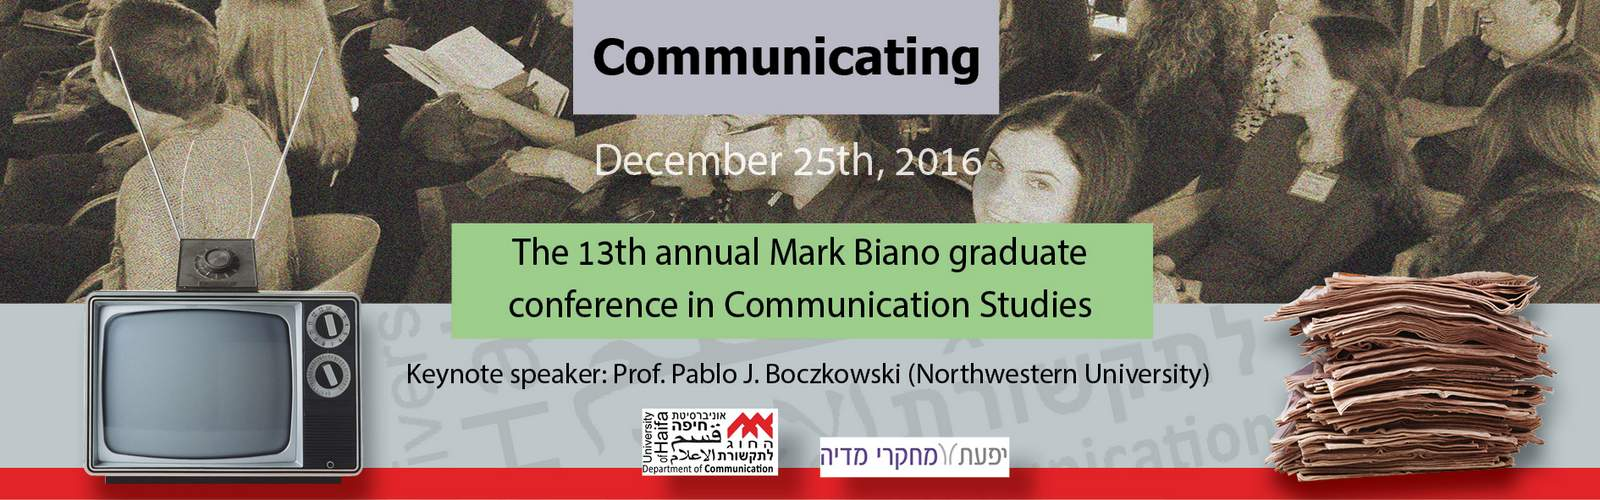 Prof. Pablo Boczkowski will be the keynote speaker at the annual Mark Biano graduate student conference in Communication (25.12.16)